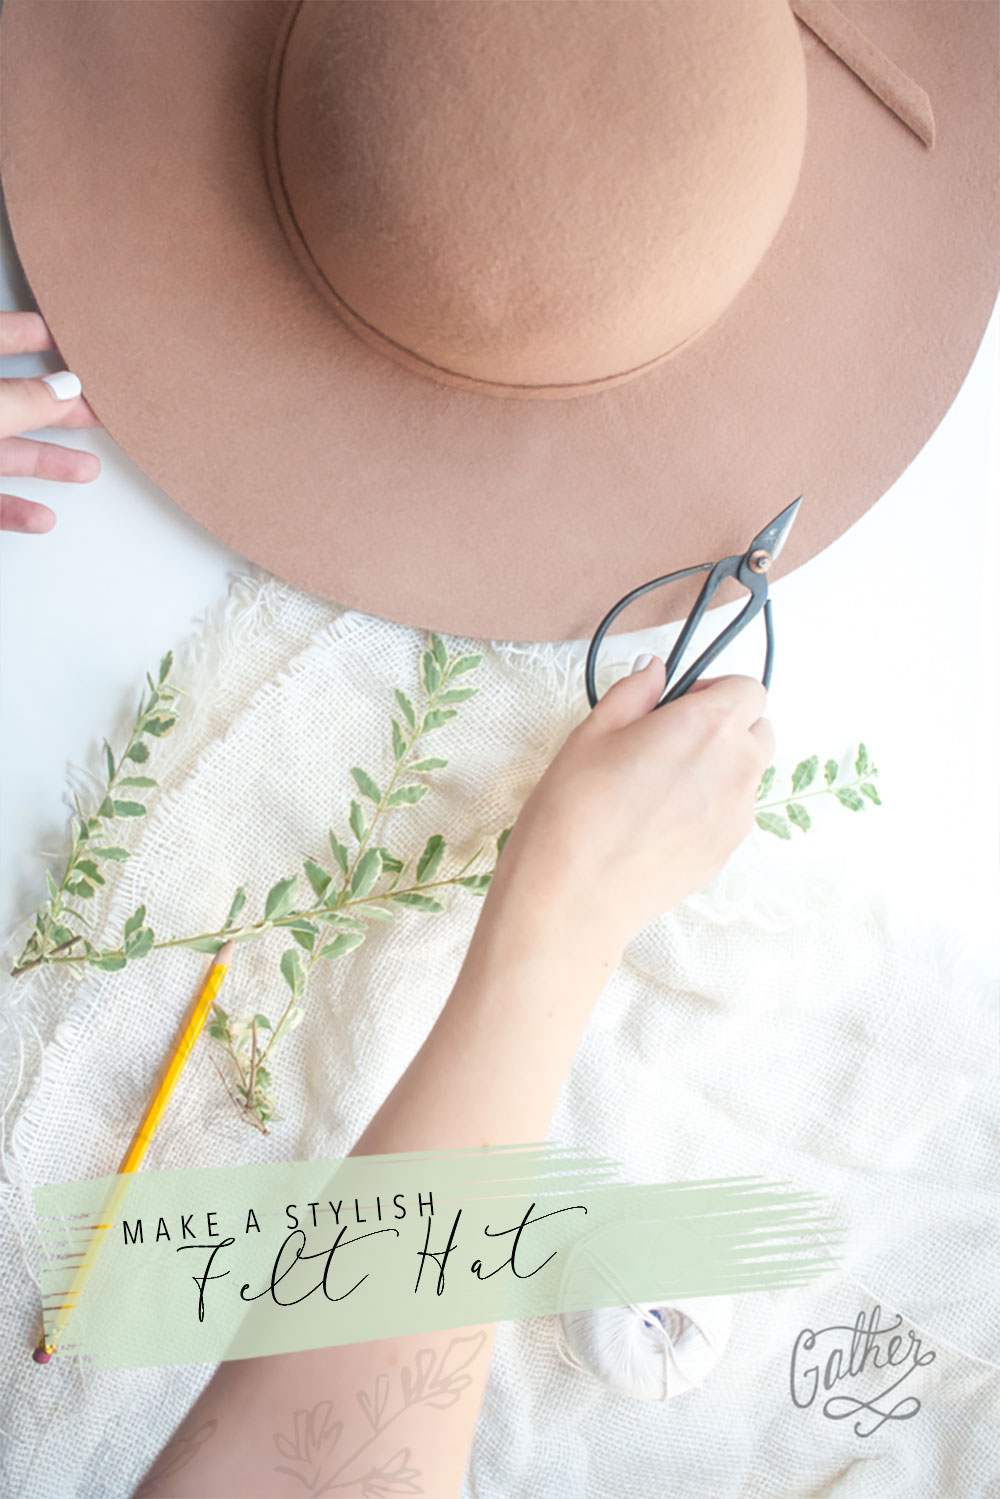 Make A Stylish Felt Hat | Gather Goods Co